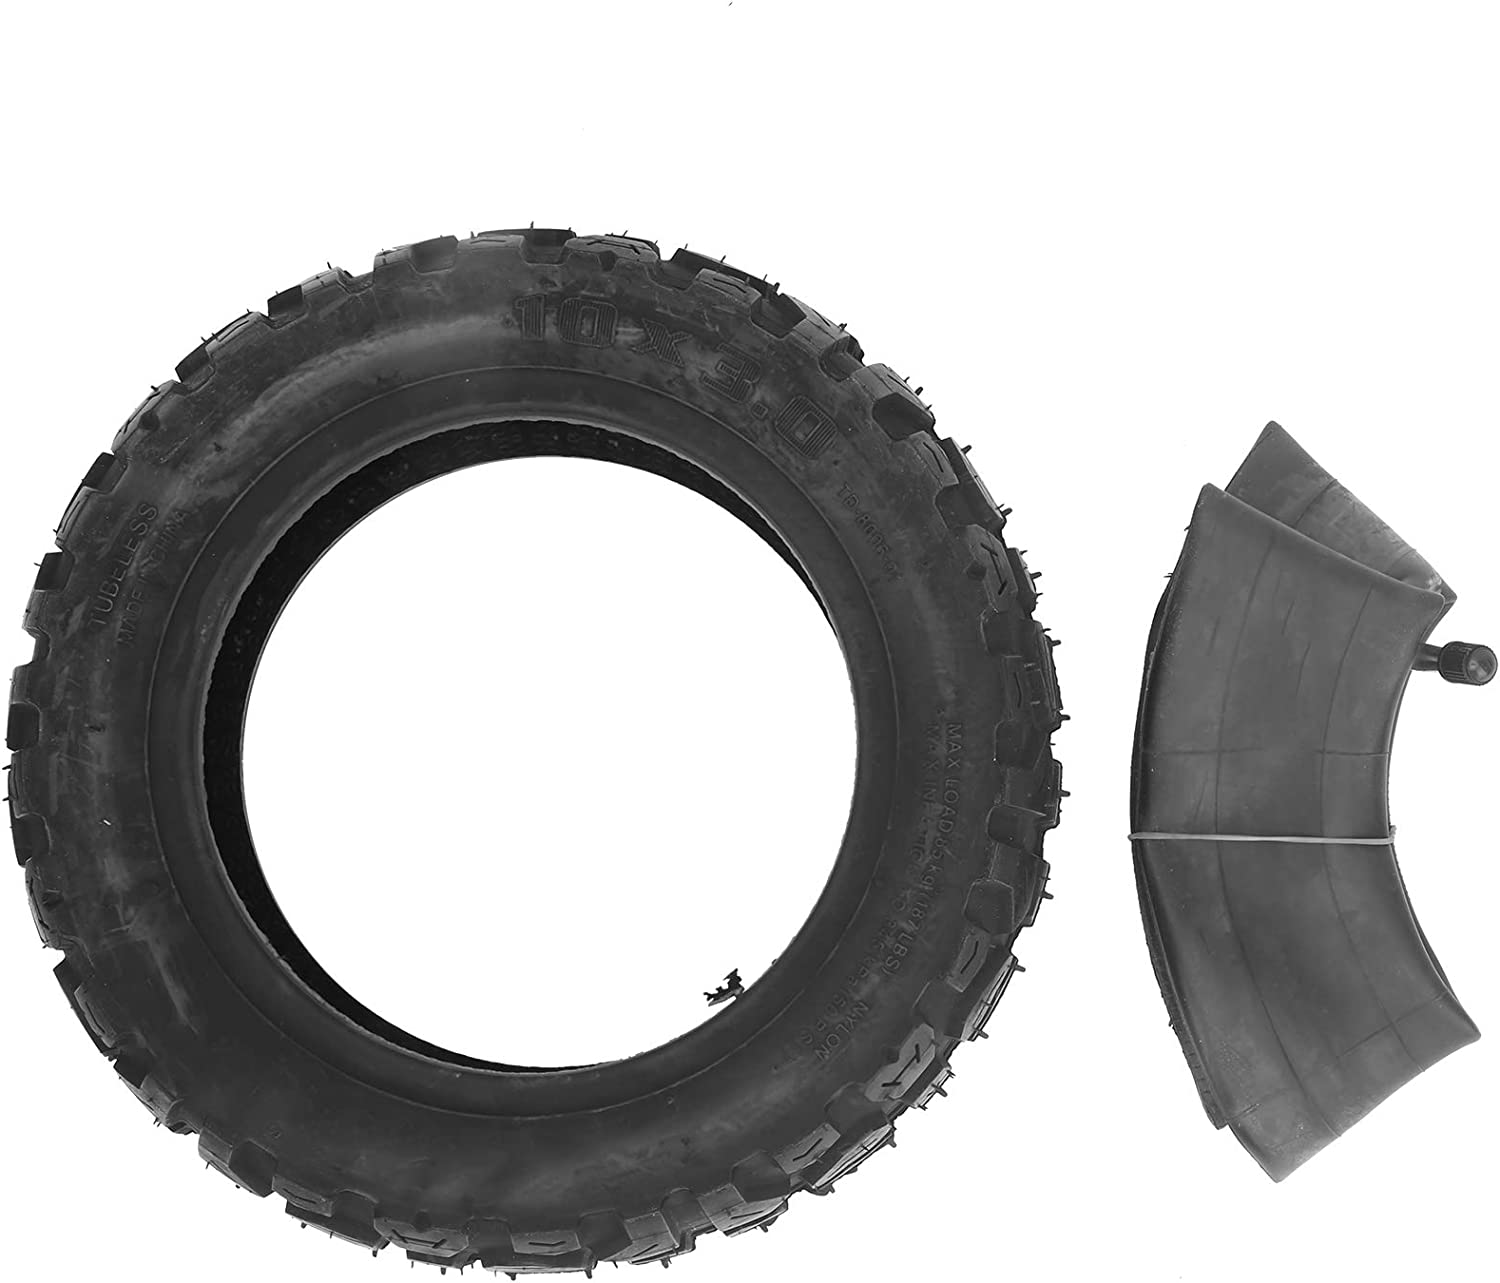 Dilwe 10in Scooter Tire, 10x3.0 Inner and Outer Tire Antiskid Wheel Thickened Electric Scooter Tyre Electric Scooter Tire